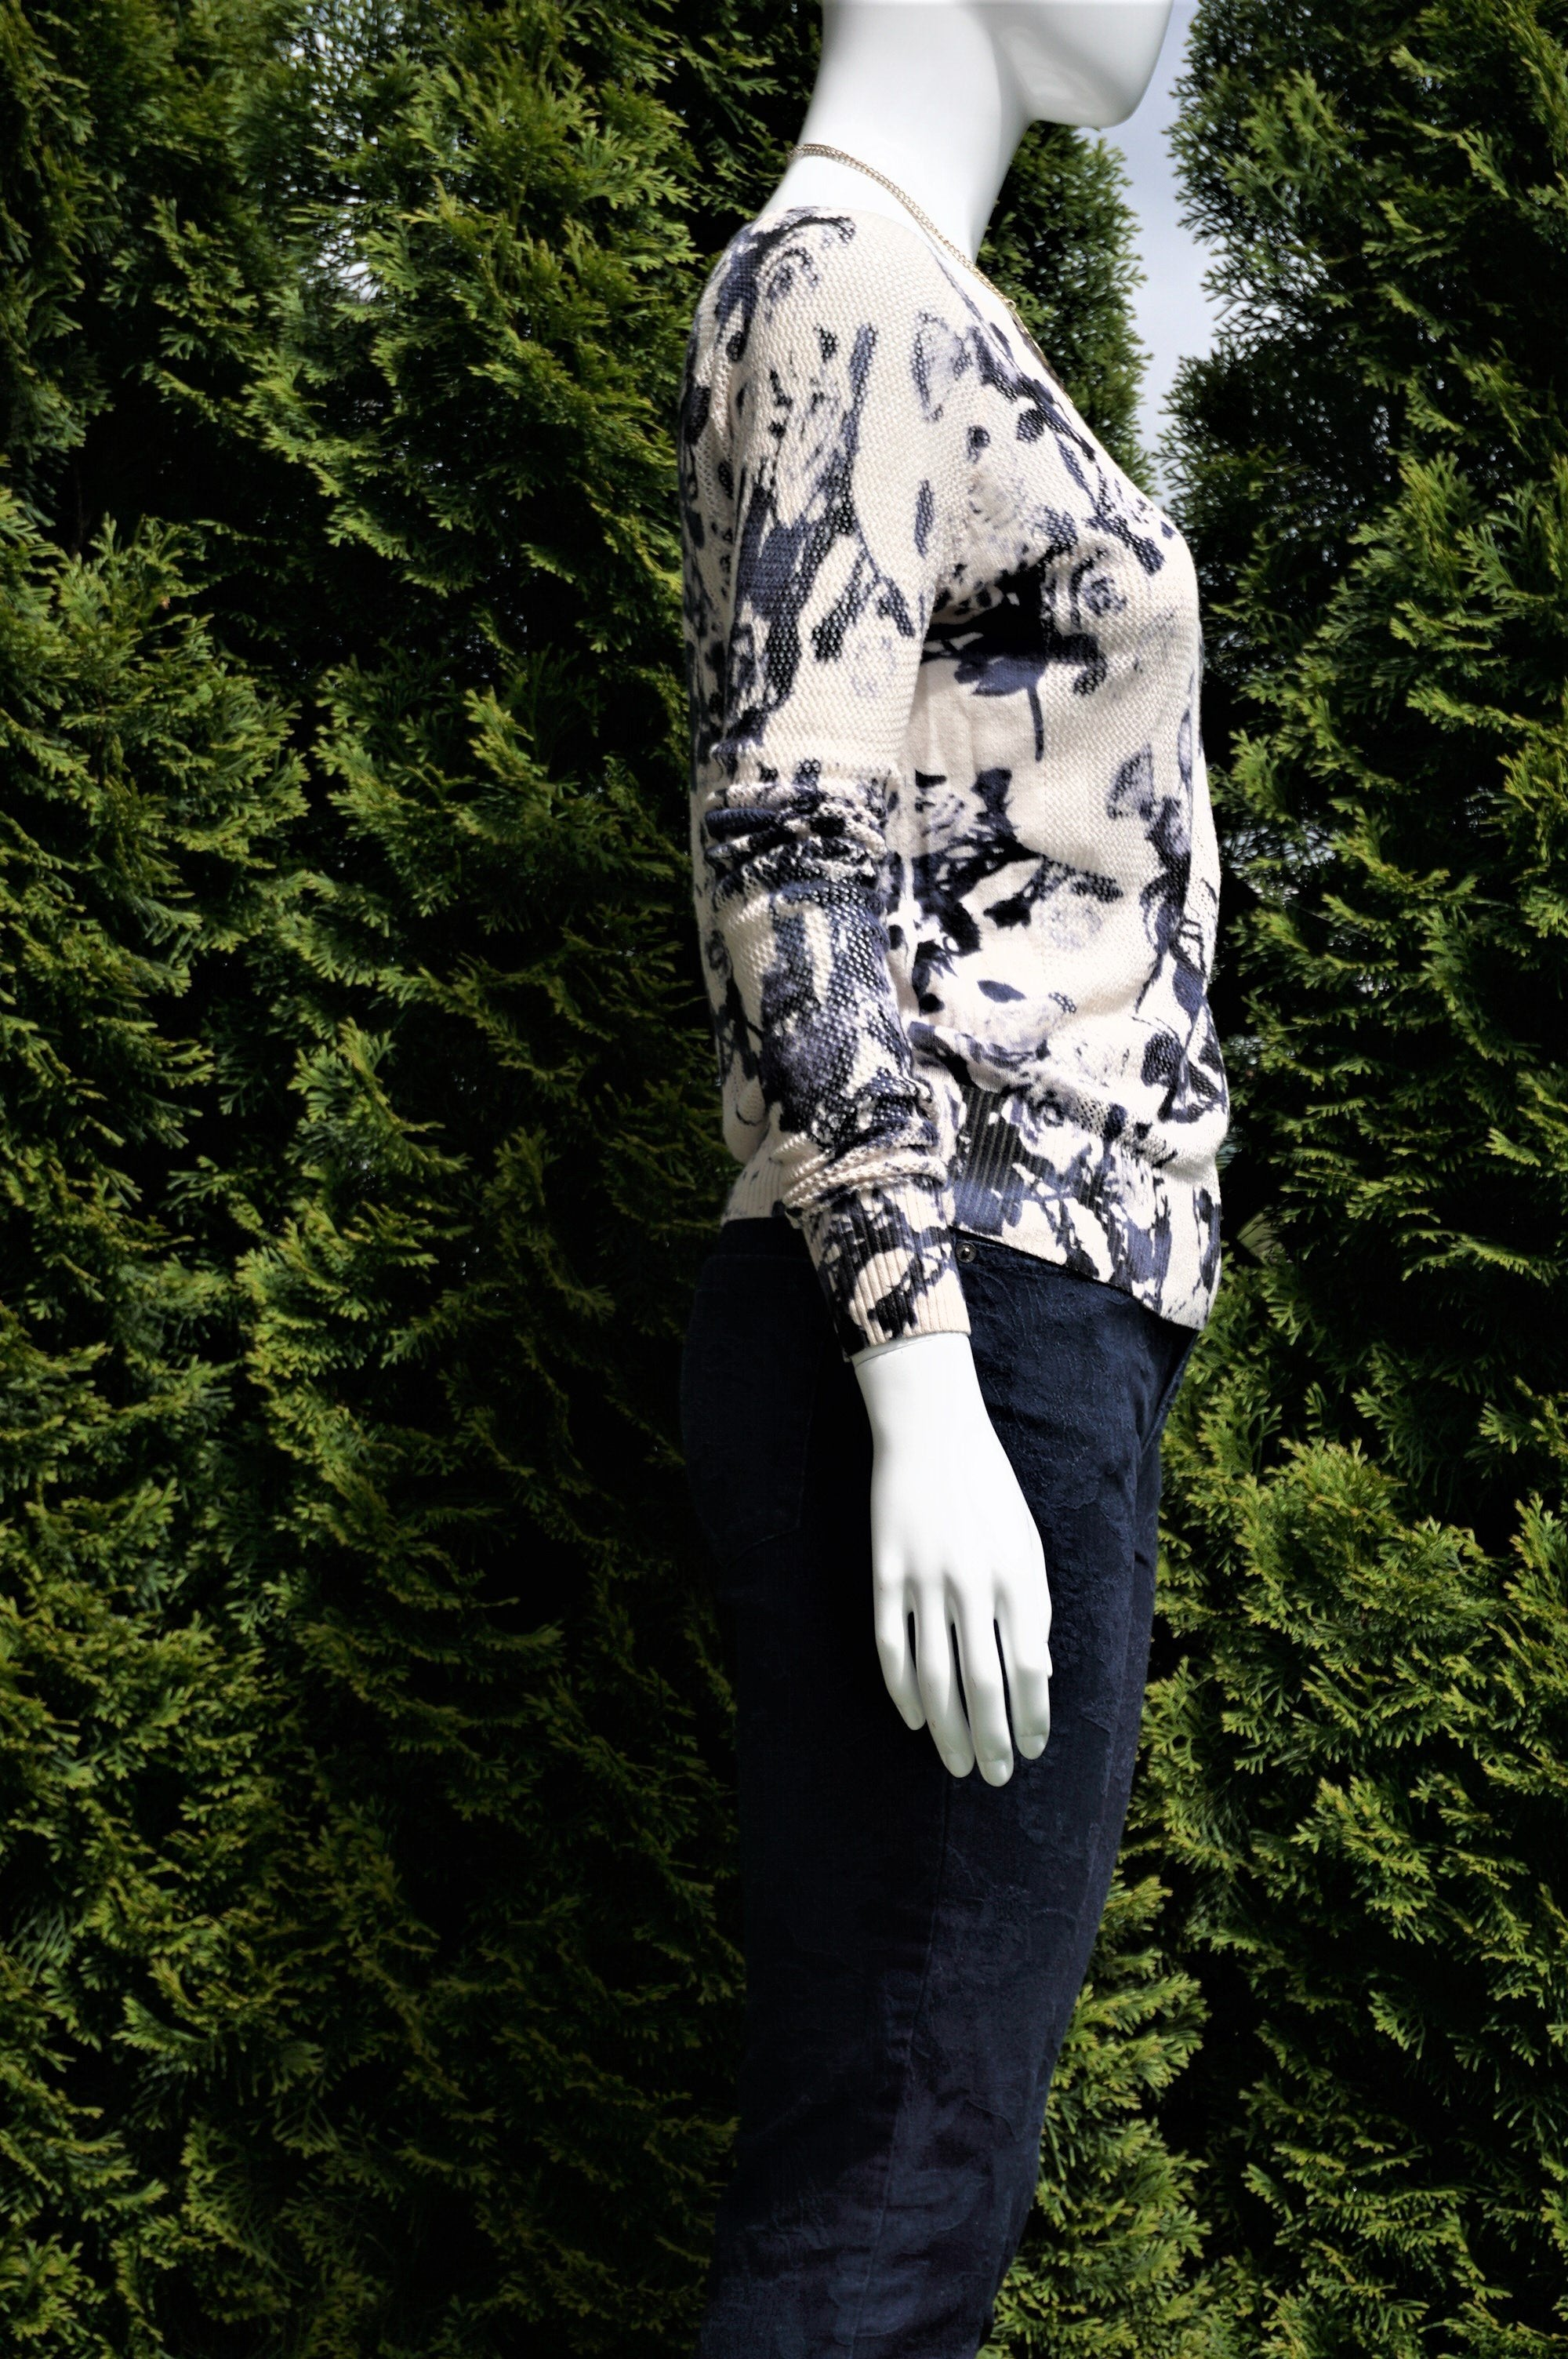 Silence & Noise Sweater Top, Thin sweater top with floral prints for your casual outing on a chily day., White, Blue, 100% cotton, women's Tops, women's White, Blue Tops, Silence & Noise women's Tops, Urban Outfitter sweater top with sabrina neckline, floral sweater top, spring floral sabrina neck sweater